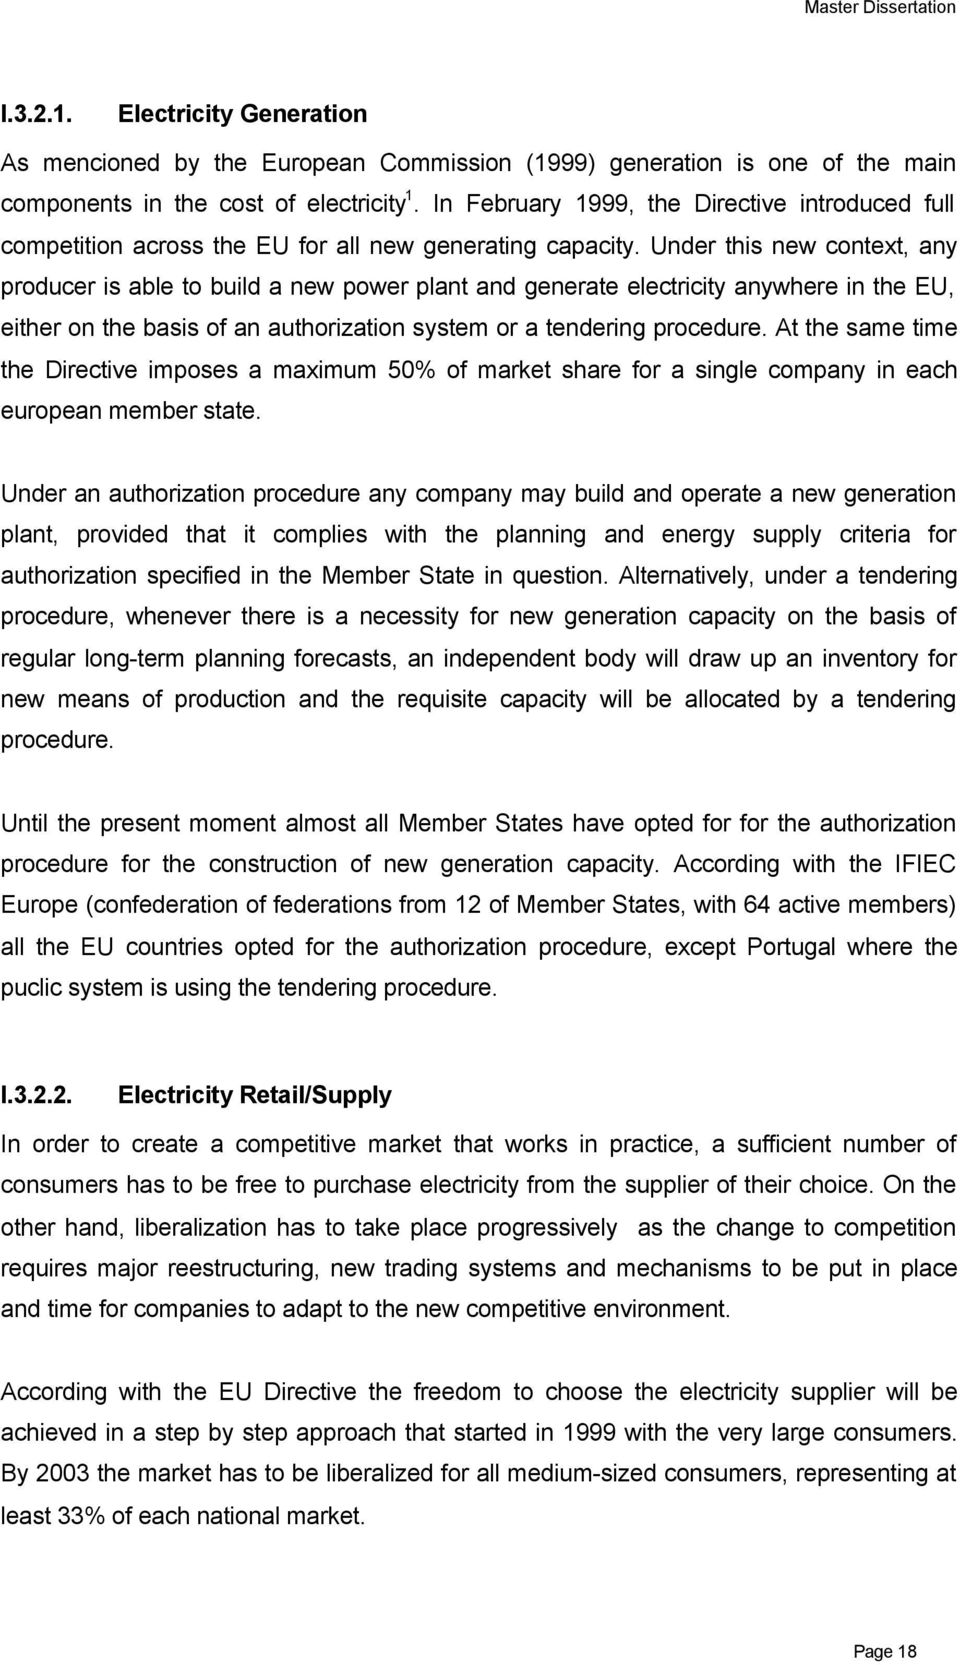 Under this new context, any producer is able to build a new power plant and generate electricity anywhere in the EU, either on the basis of an authorization system or a tendering procedure.